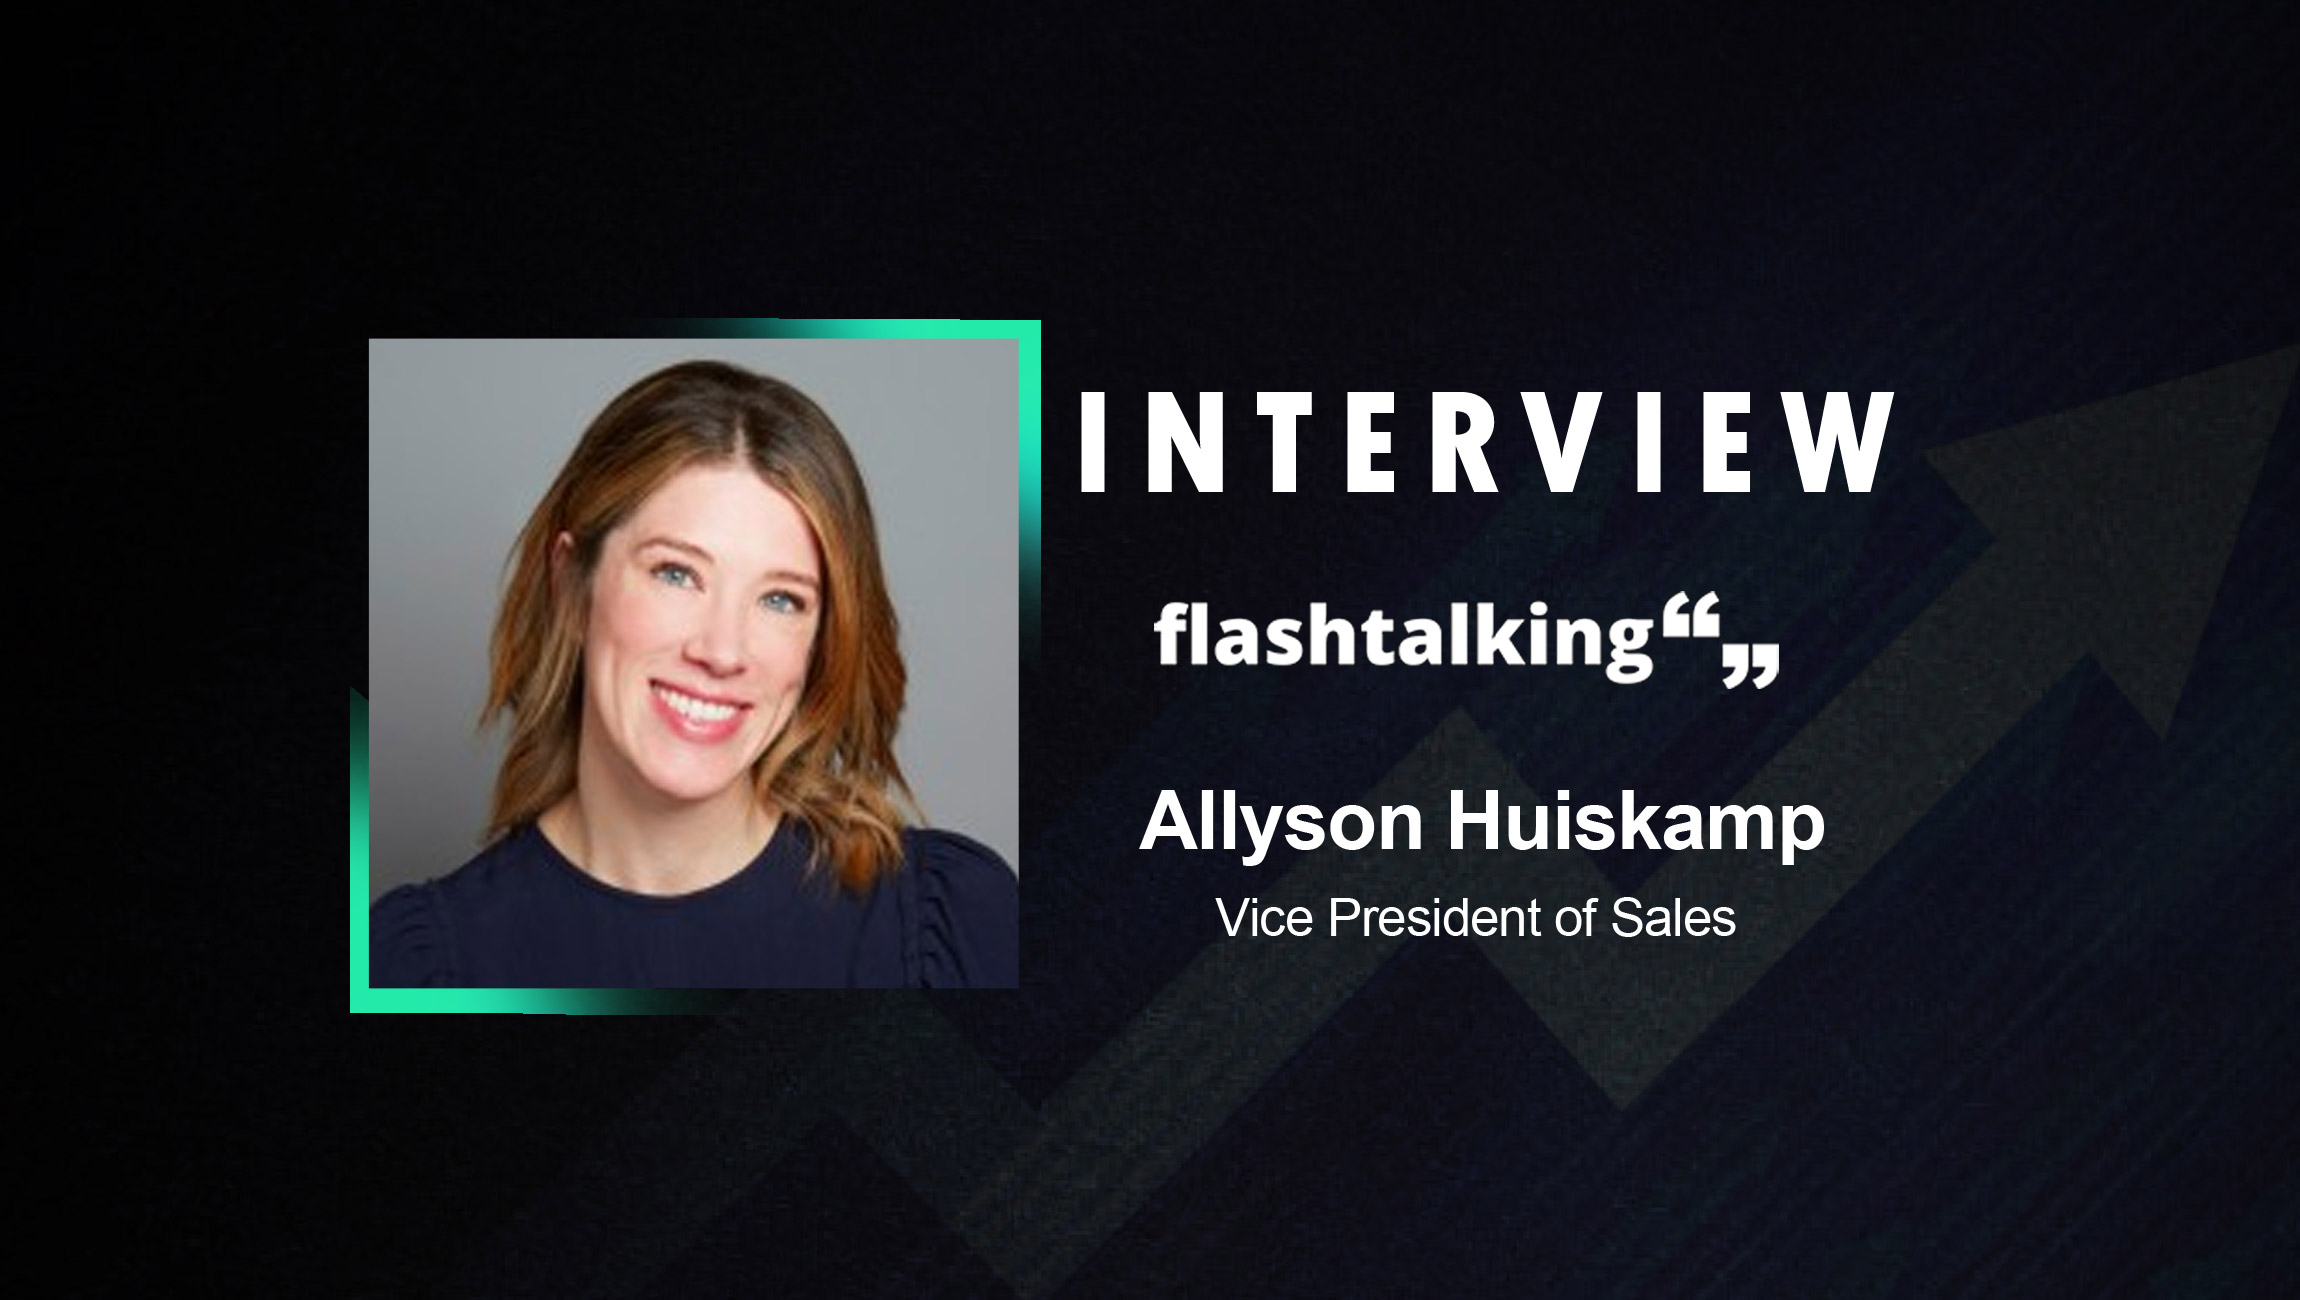 SalesTechStar Interview with Allyson Huiskamp, Vice President of Sales at Flashtalking, Inc.